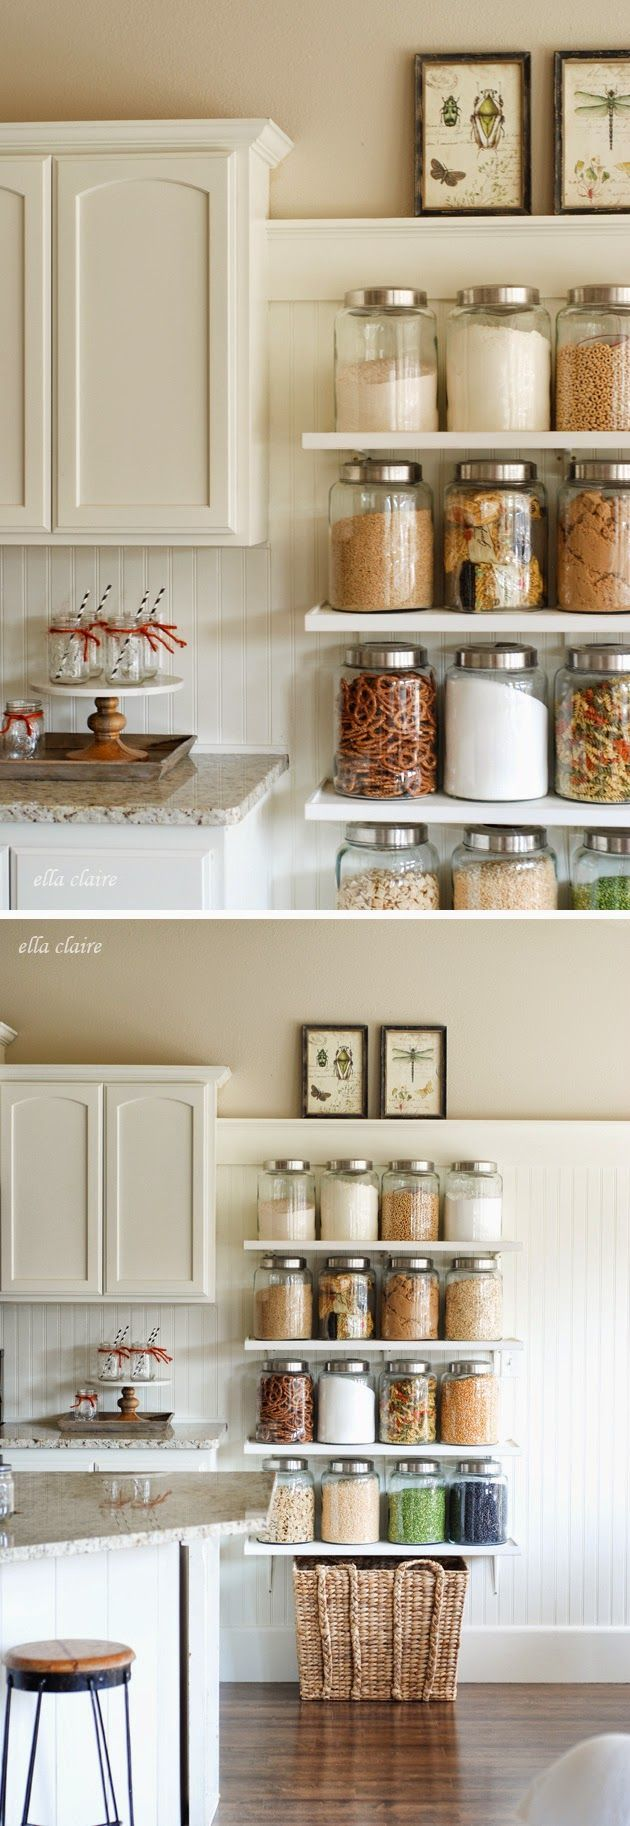 best 25 kitchen canisters and jars ideas on pinterest country country store kitchen shelves creating pantry space in the kitchen by adding shelves and glass